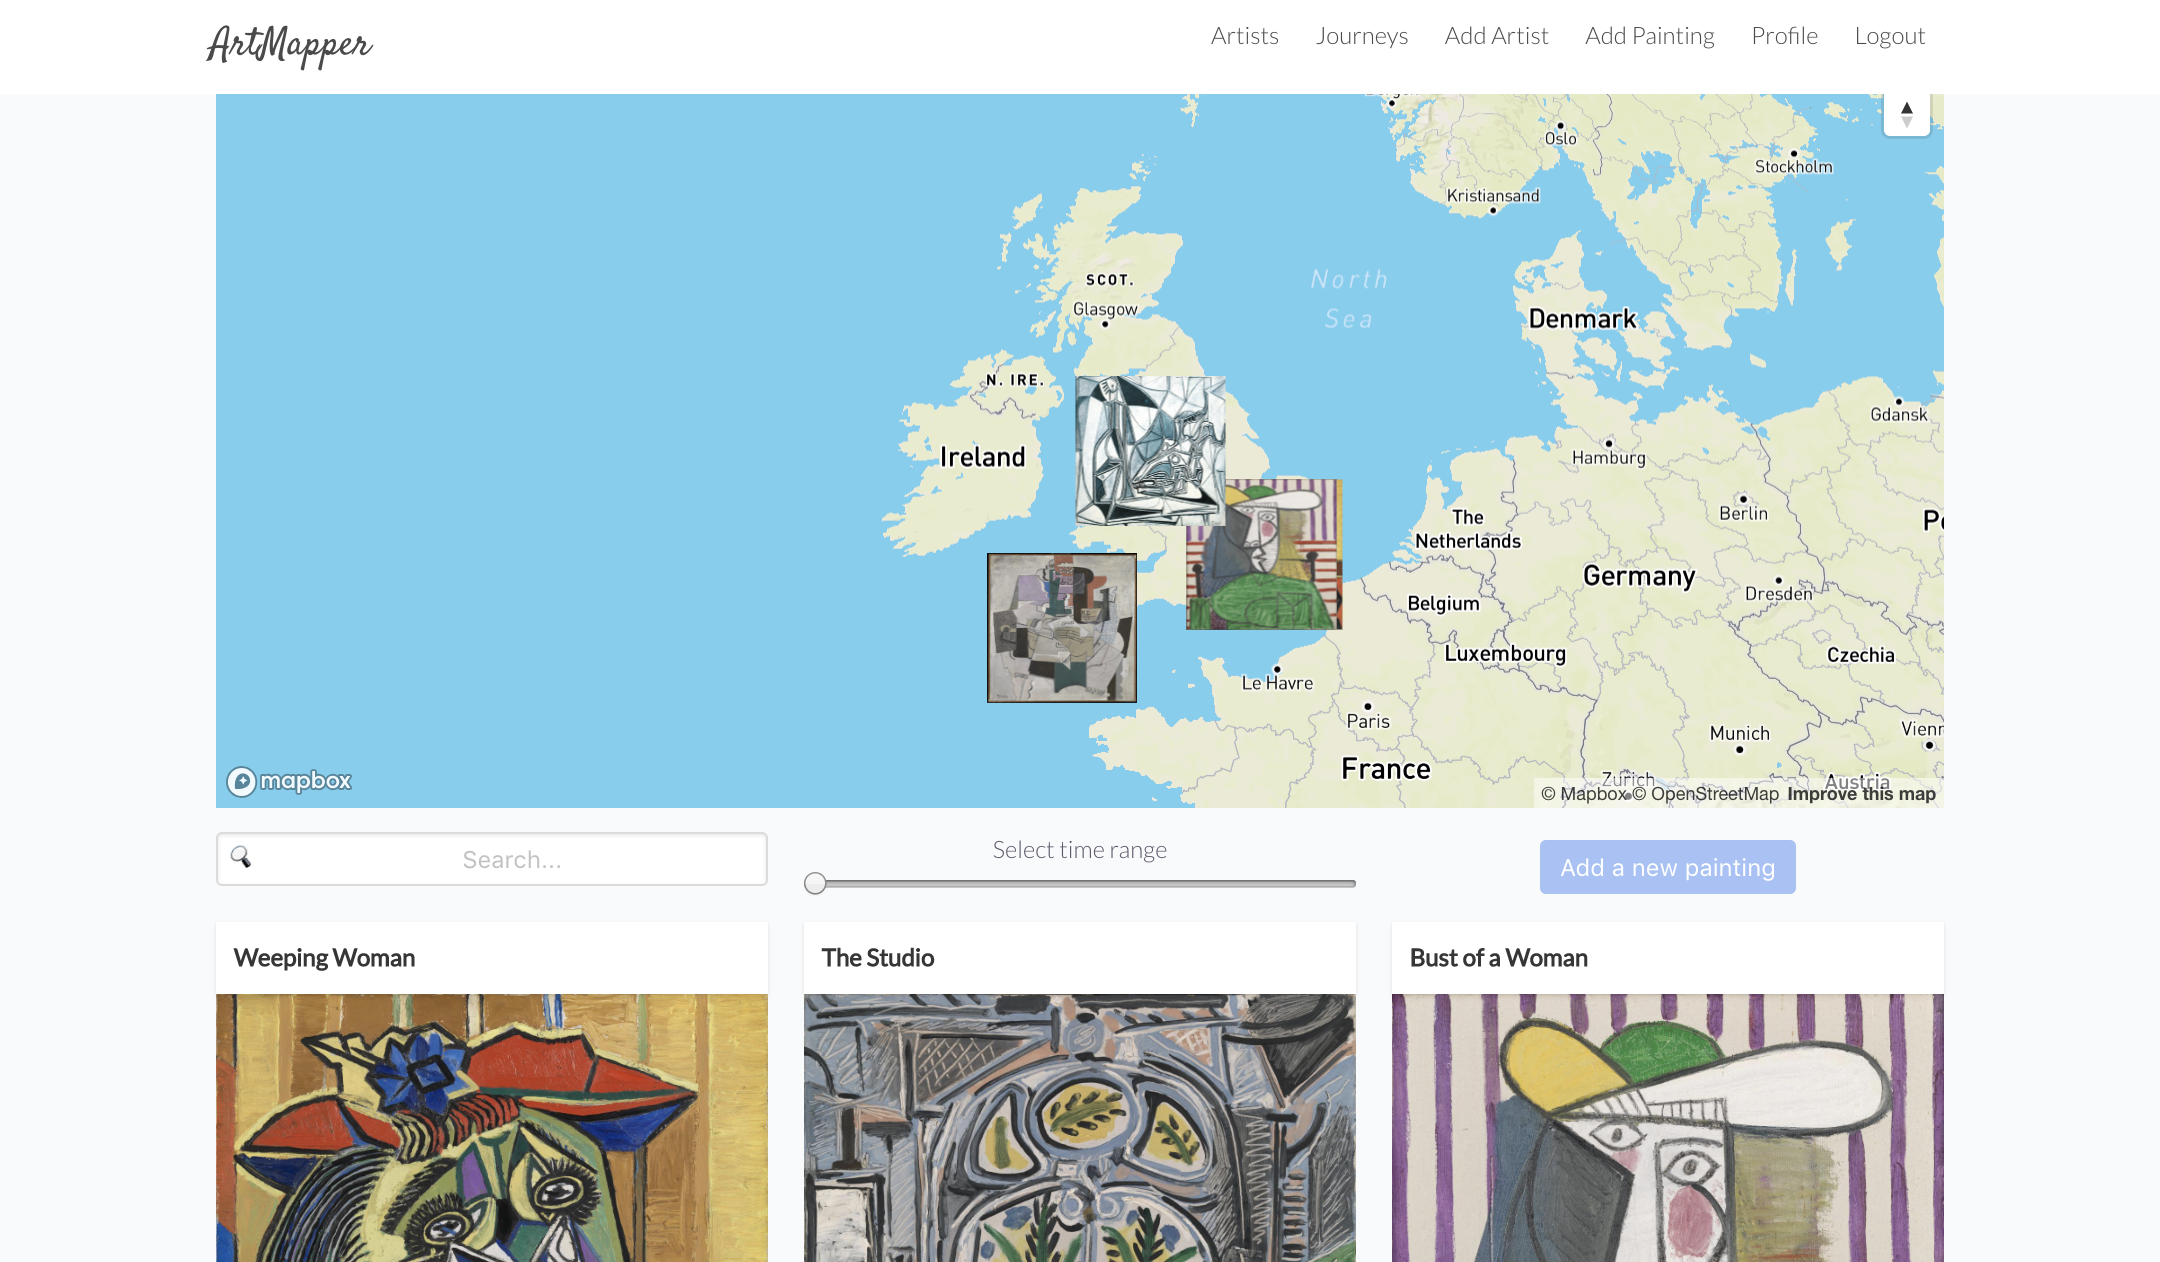 artist showpage with map and paintings